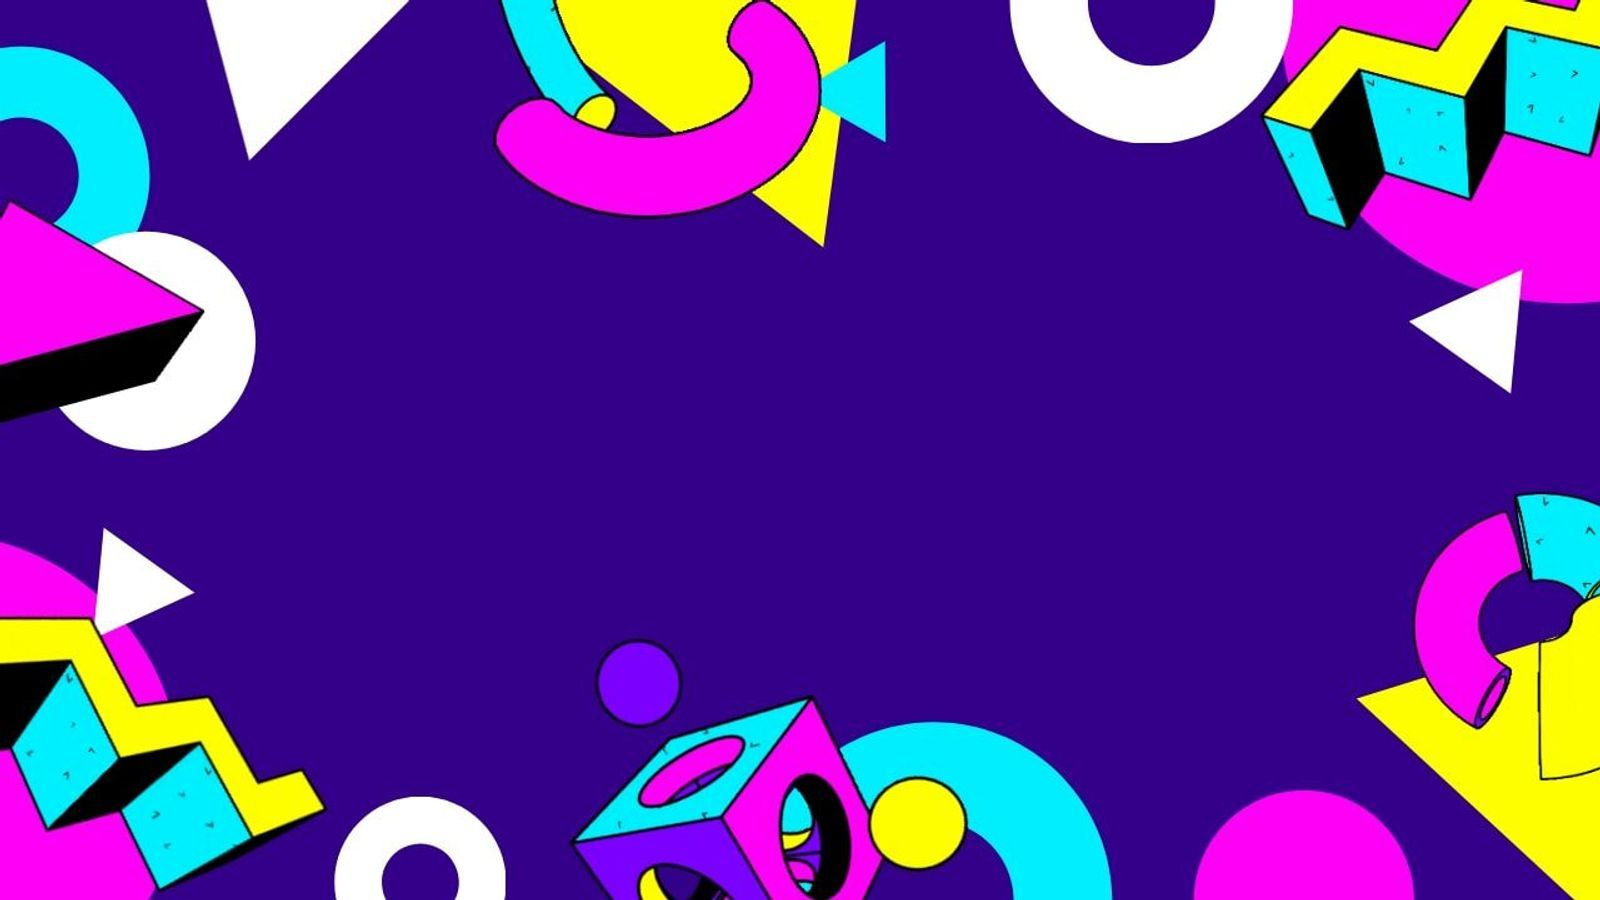 Colorful 90s Geometric Shapes Zoom Virtual Background Background Work Friends Your Sky